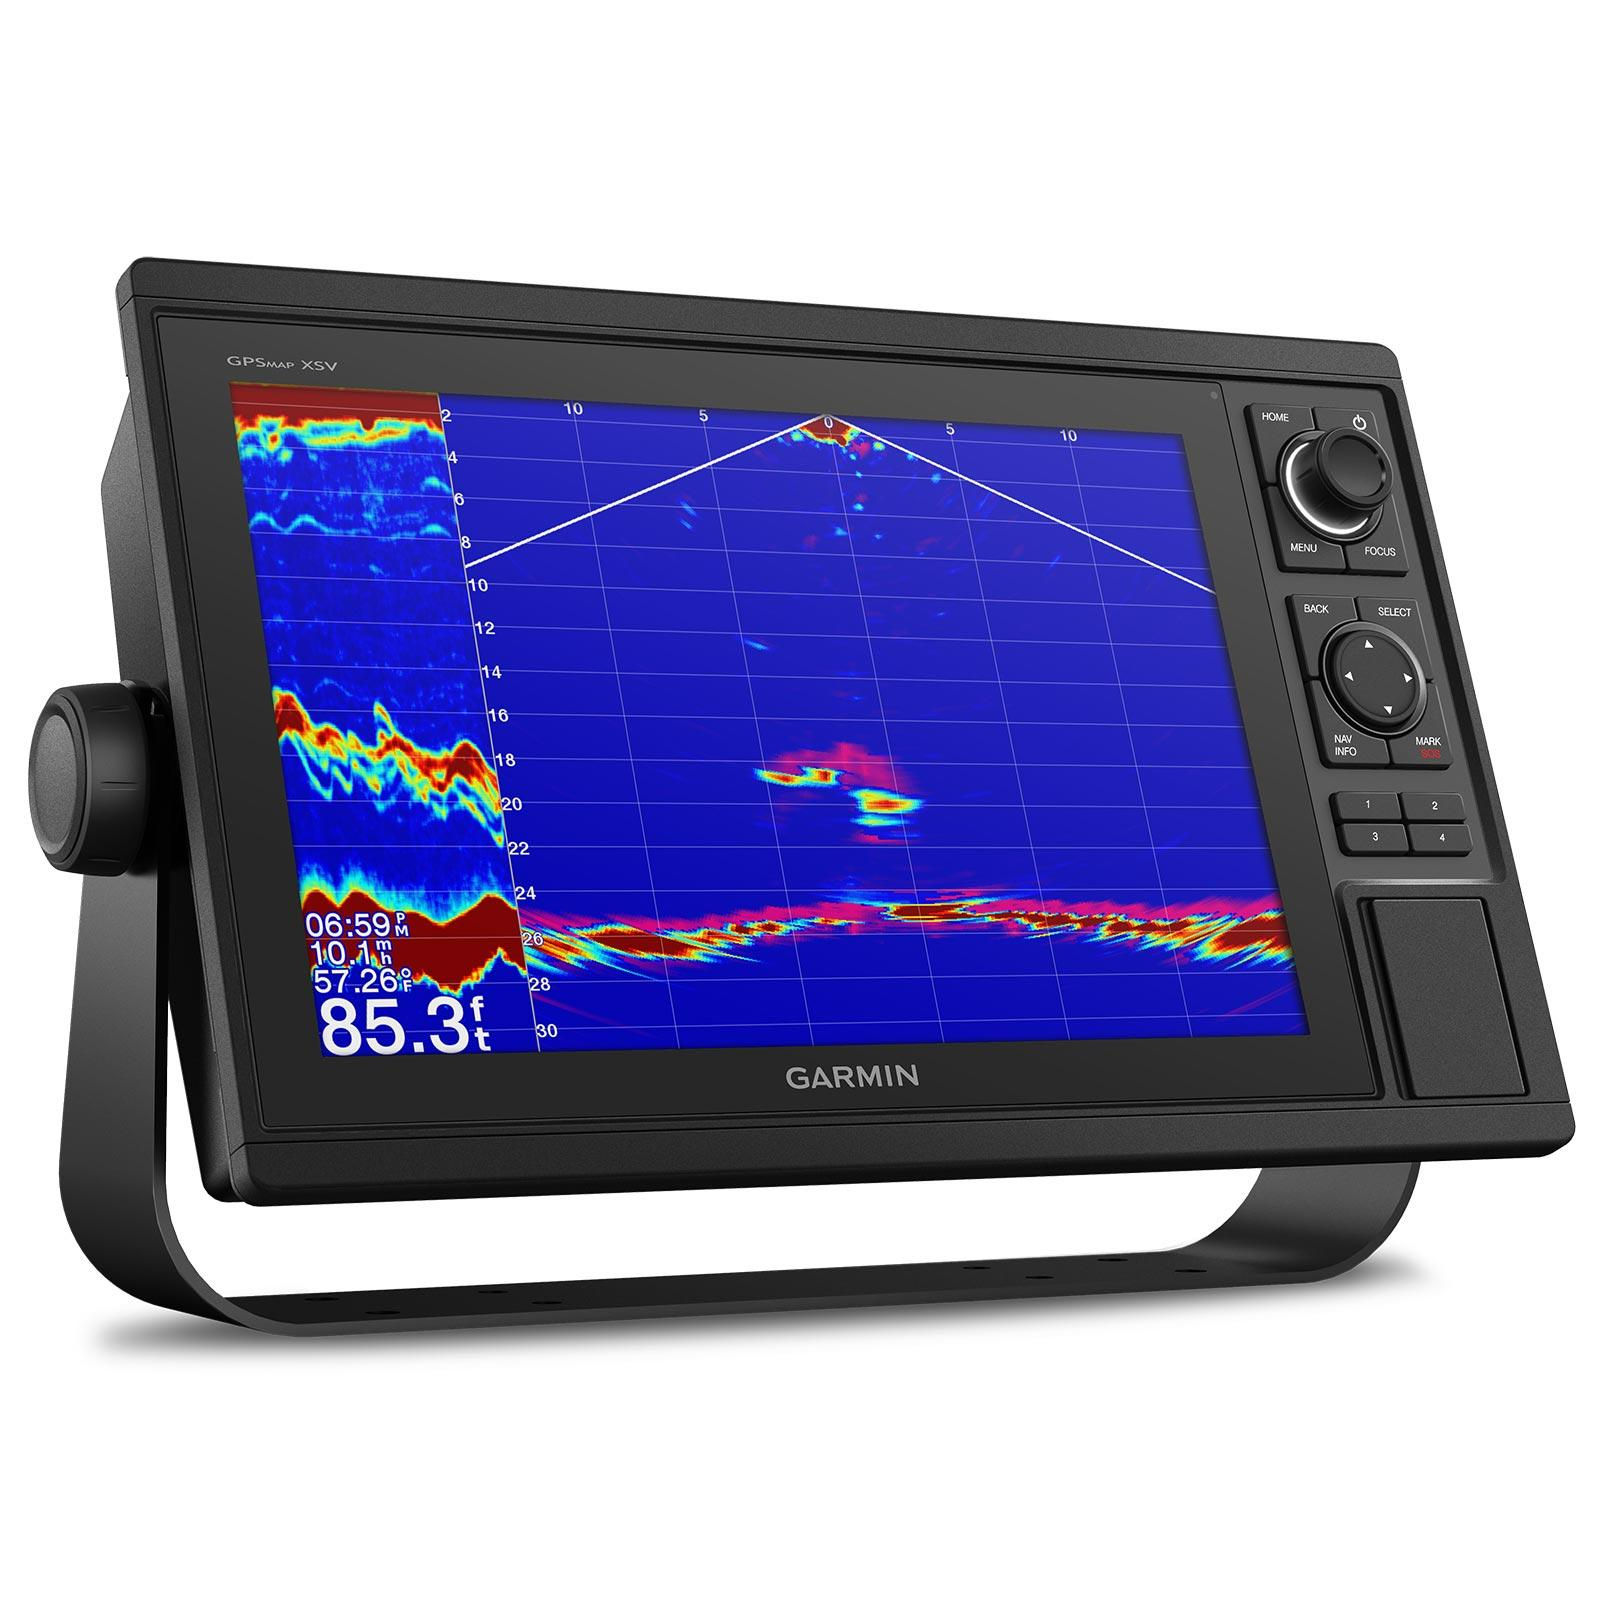 Garmin GPSMAP 1242xsv with GT52HW-TM Transducer In Use